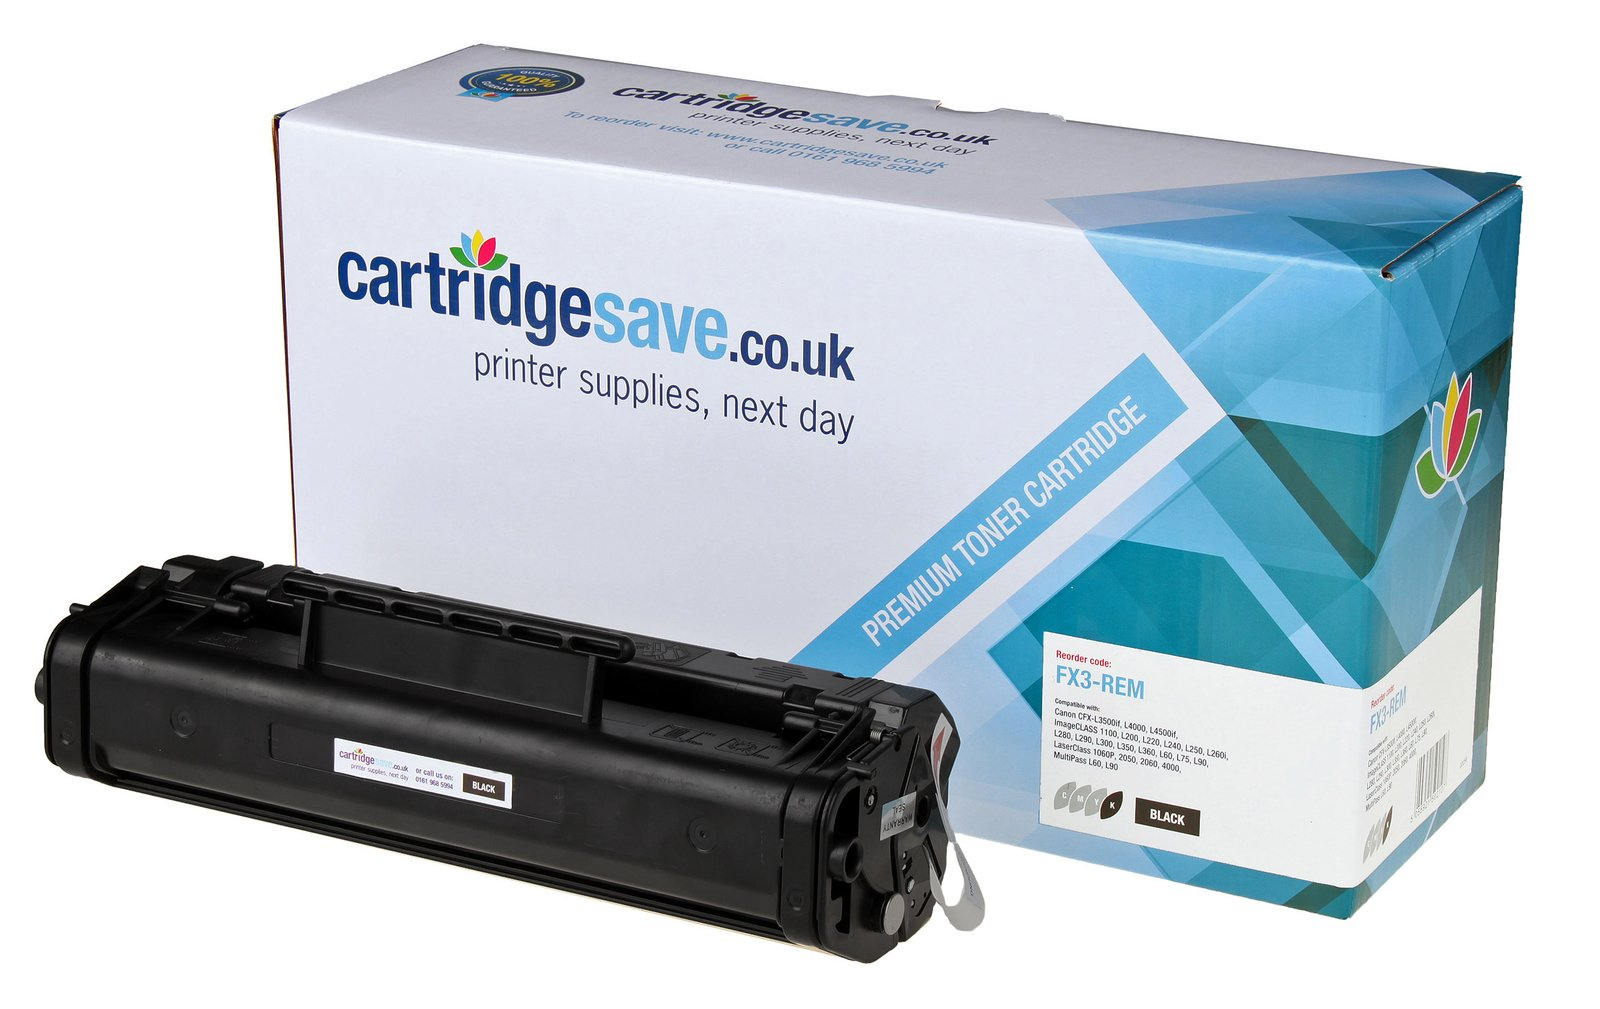 Compatible Black Canon FX3 Toner Cartridge - (Replaces Canon 1557A003BA)